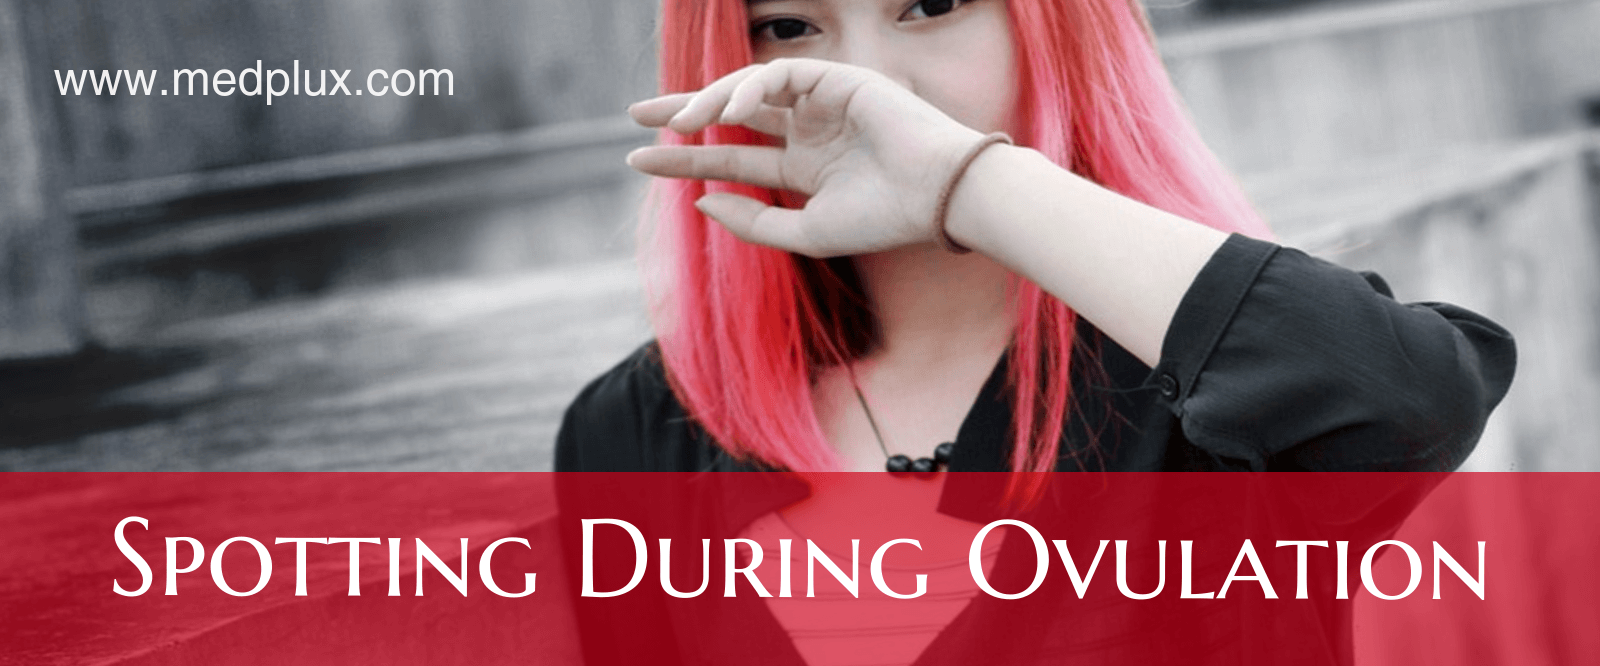 Midcycle ovulation bleeding or spotting